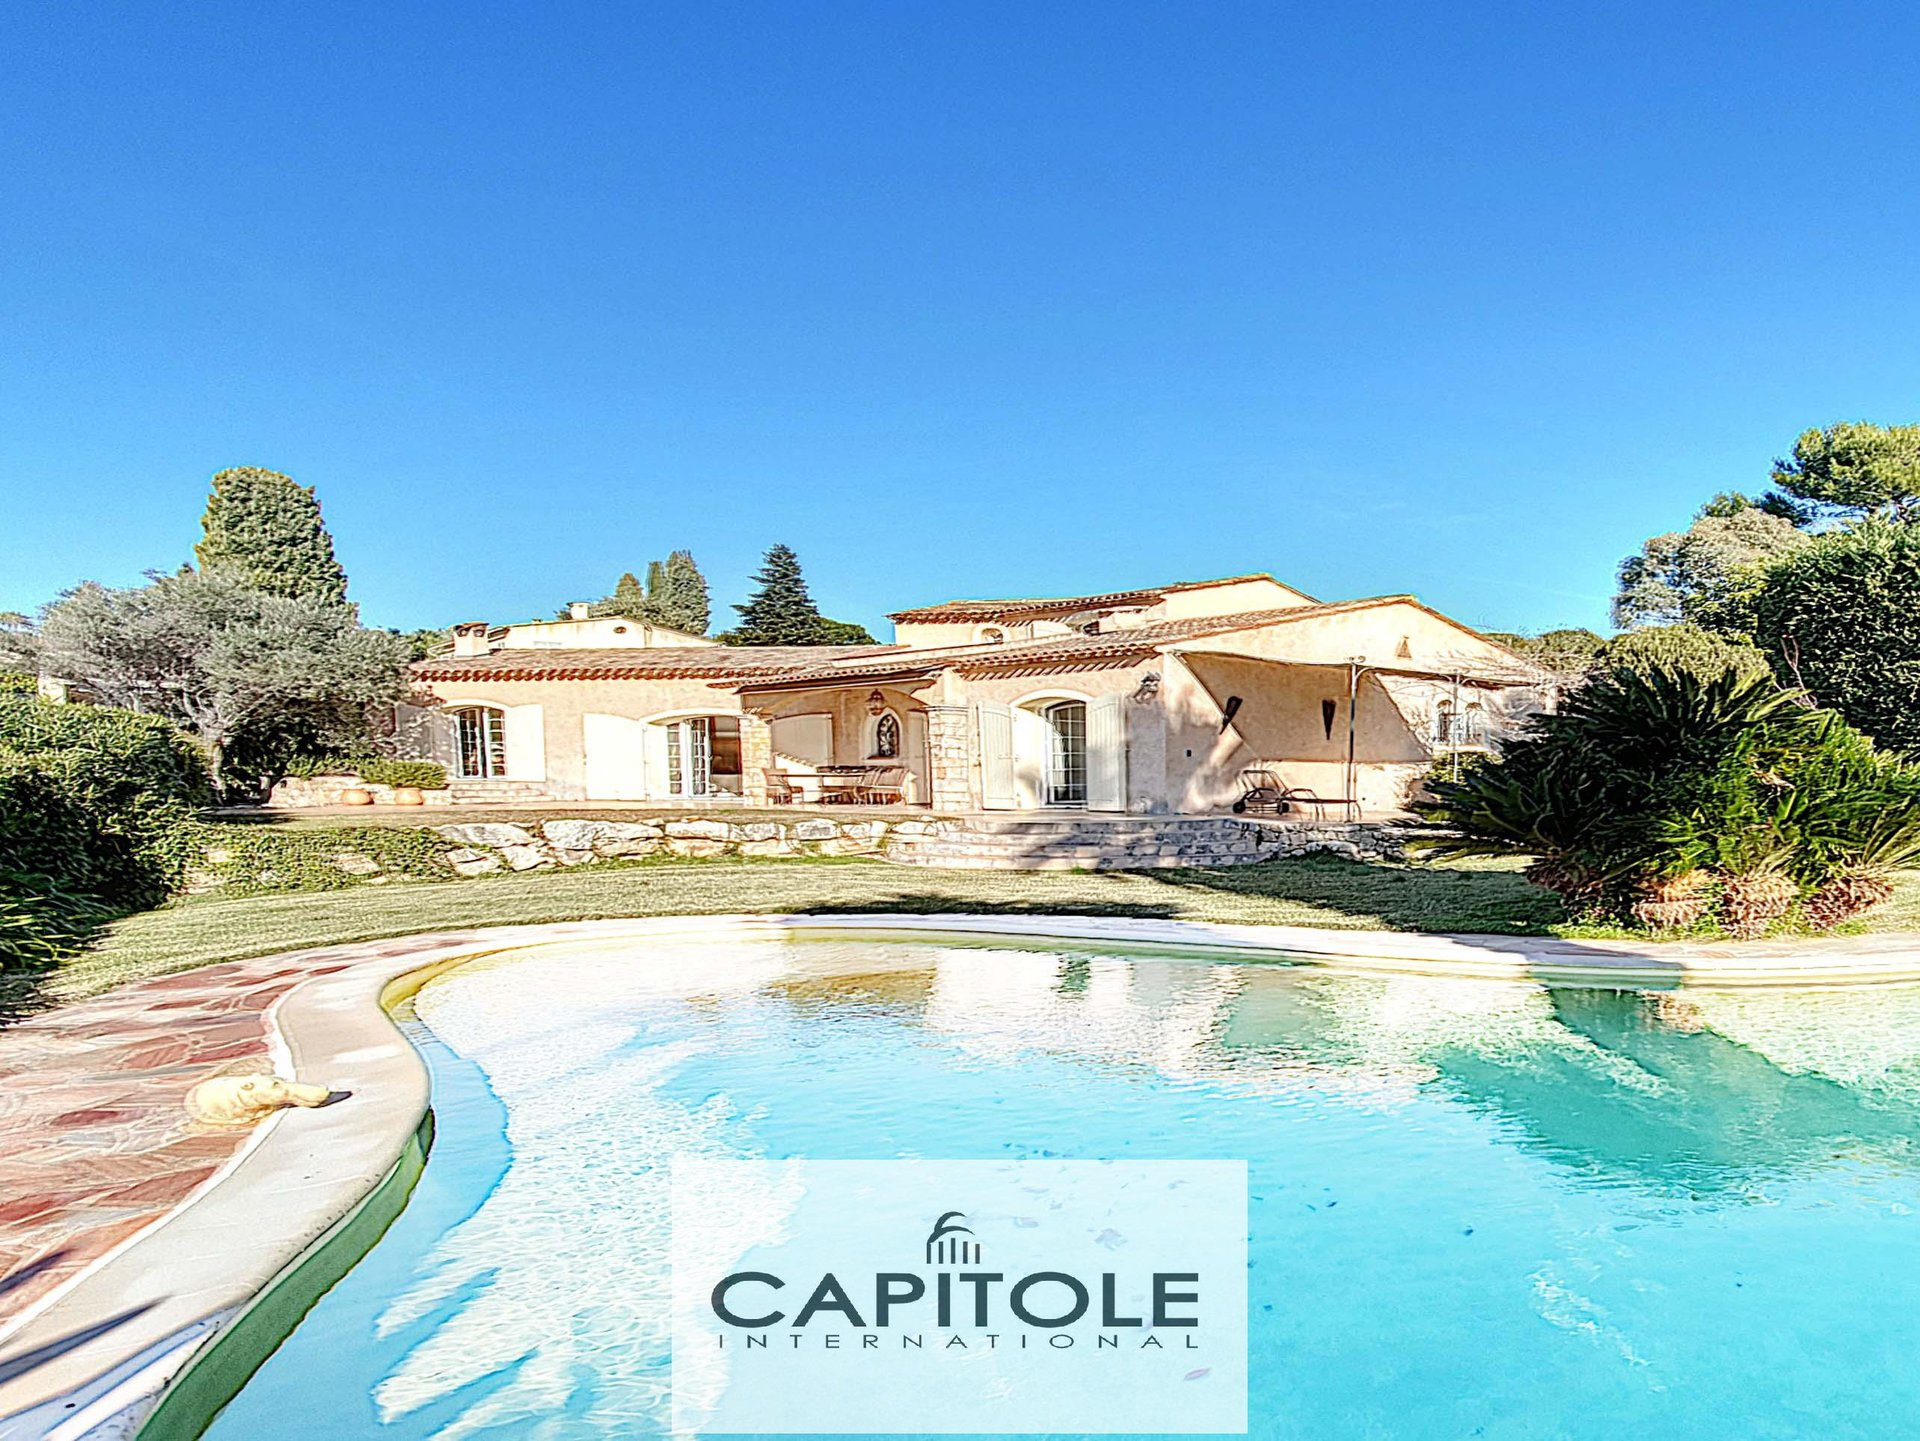 Antibes  6 bedrom villa of 229m²  with pool on grounds of 1800m²